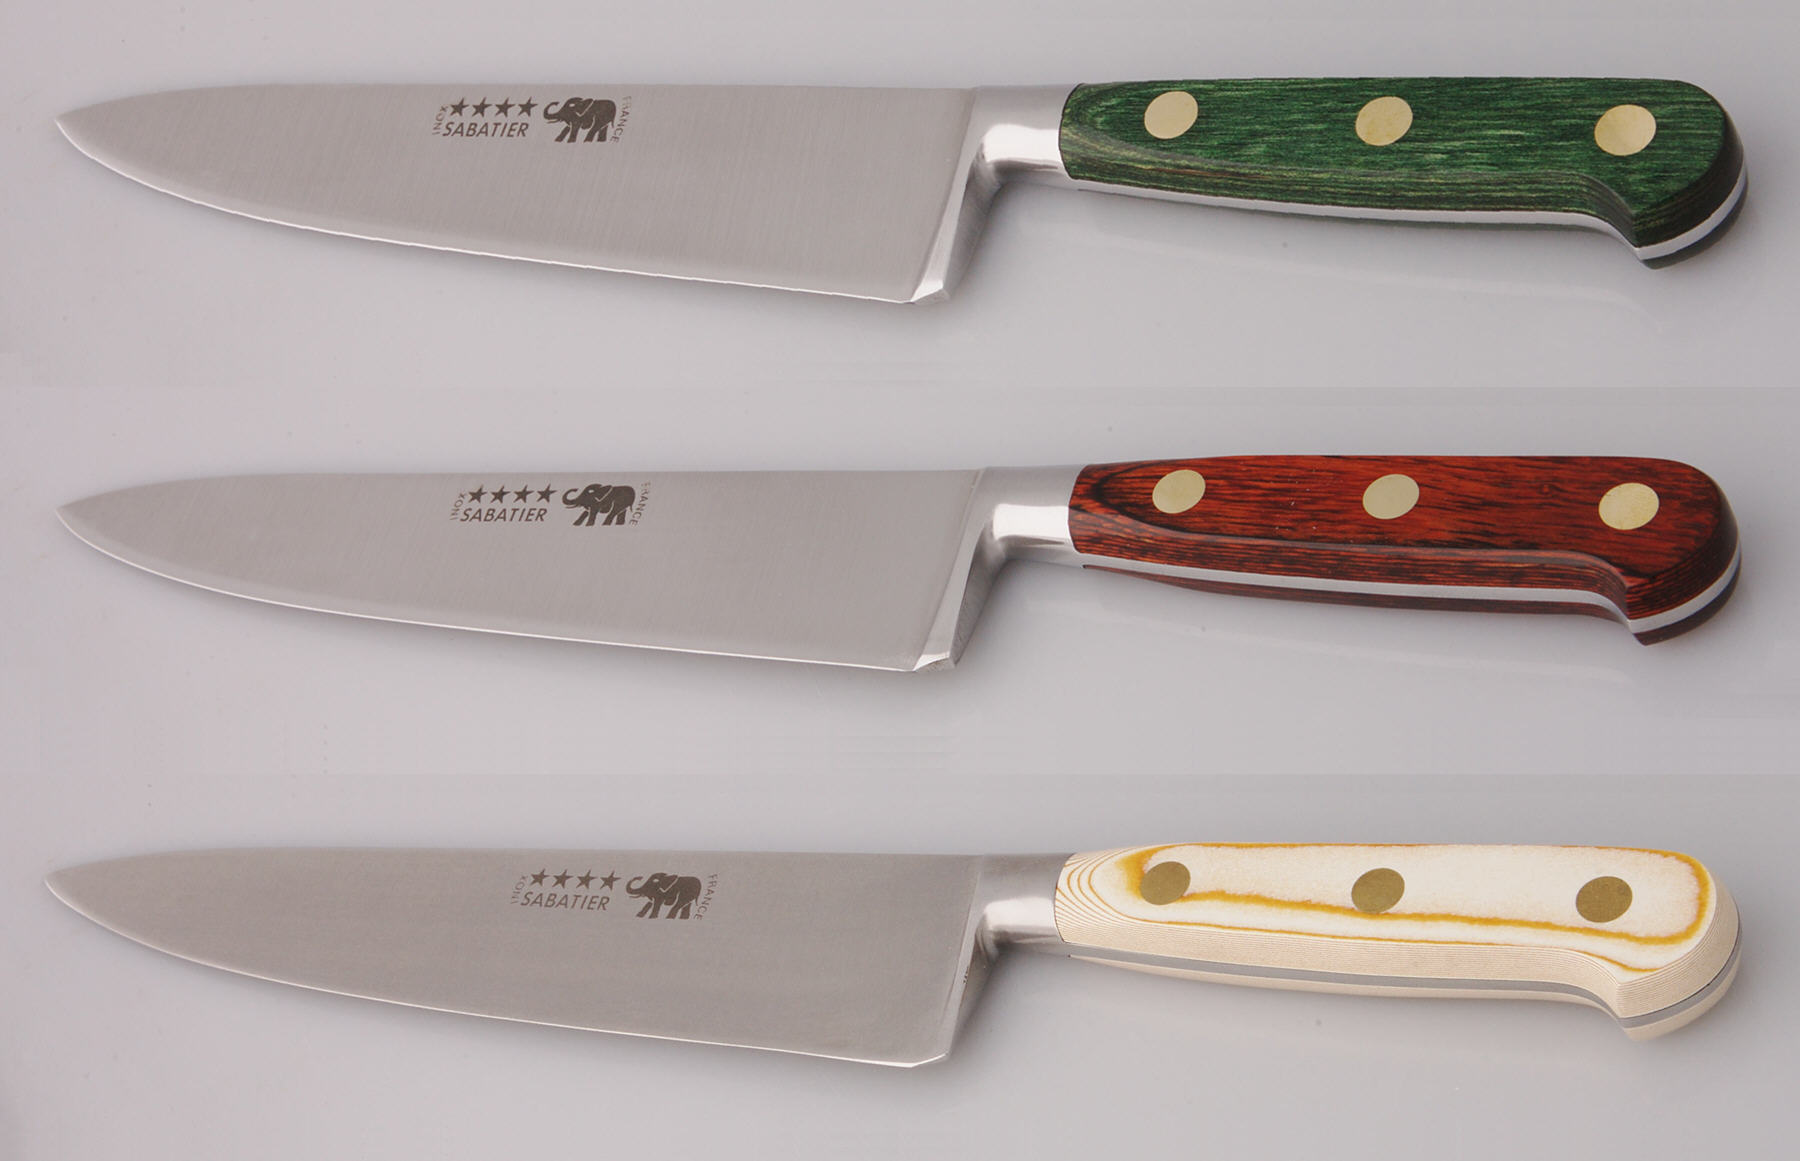 8 in 20 cm chef knife with color choice great french knives. Black Bedroom Furniture Sets. Home Design Ideas